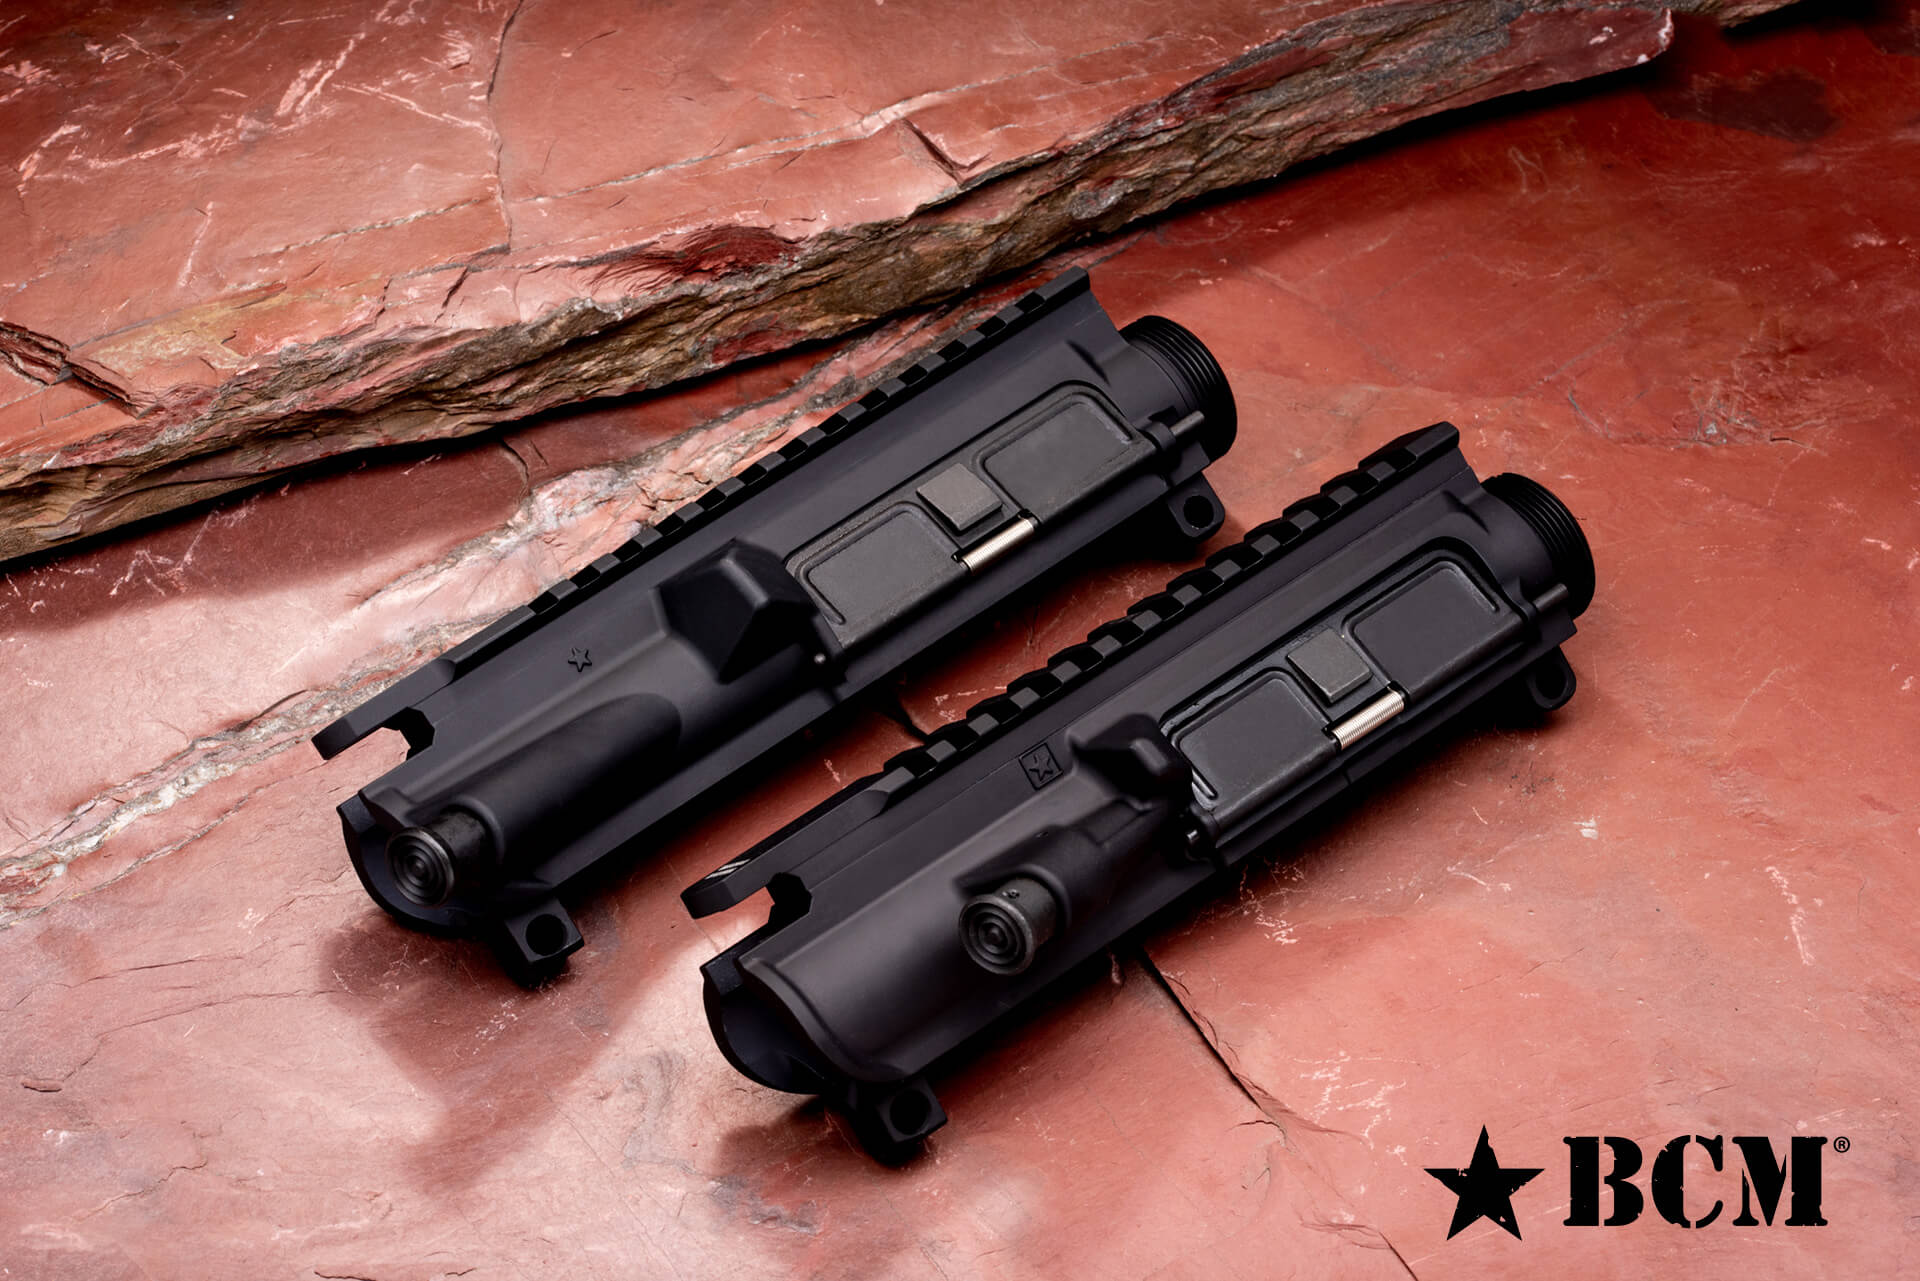 BCM Rolls Out MK2 AR-15 Uppers, Complete Groups and Rifles to Follow